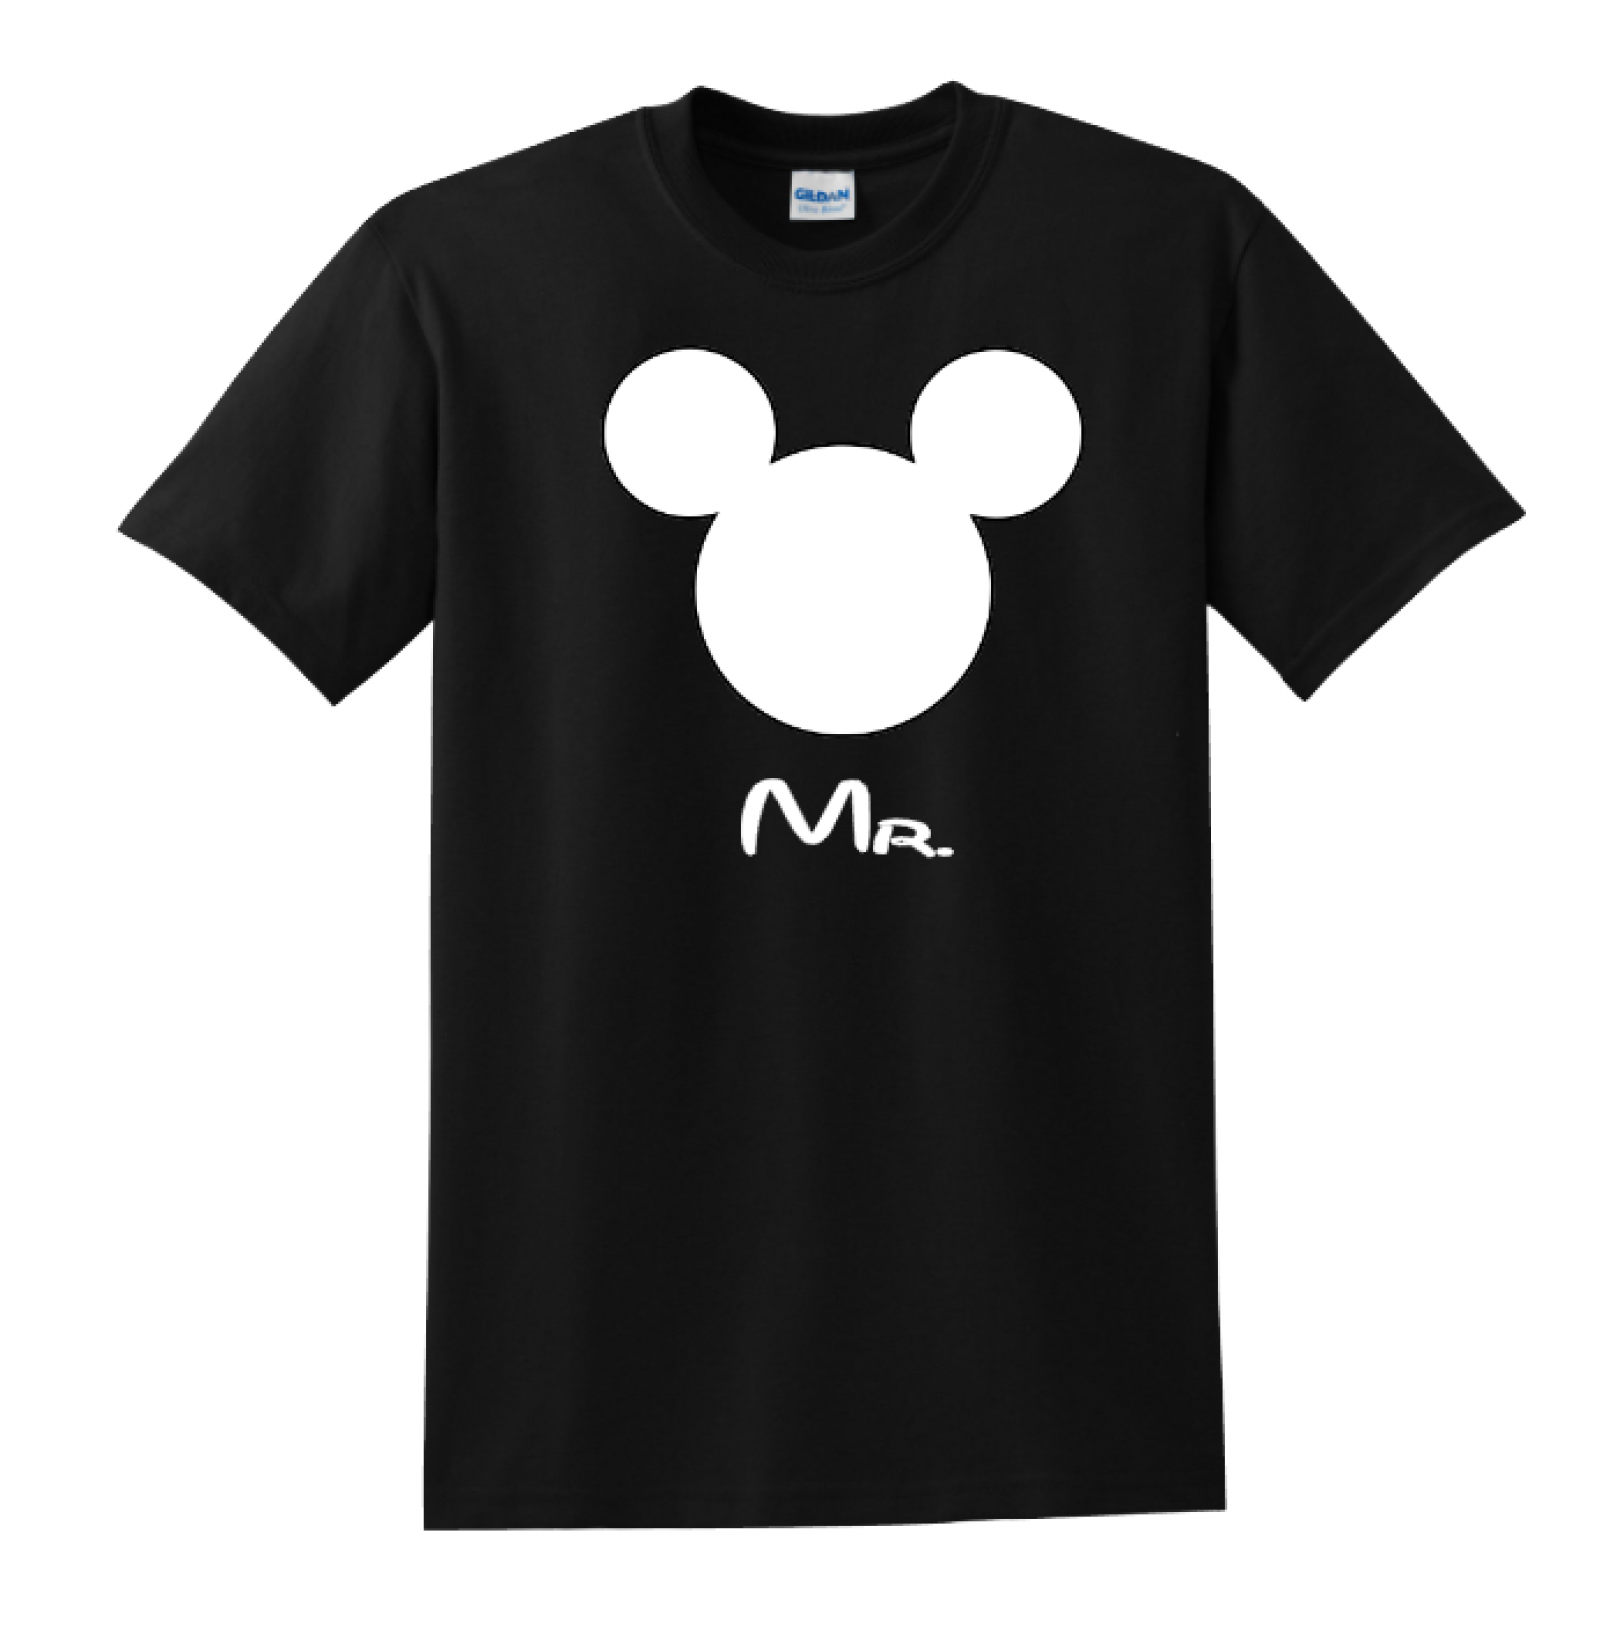 Disney family mr mrs custom t shirts black the for Custom t shirts and hoodies